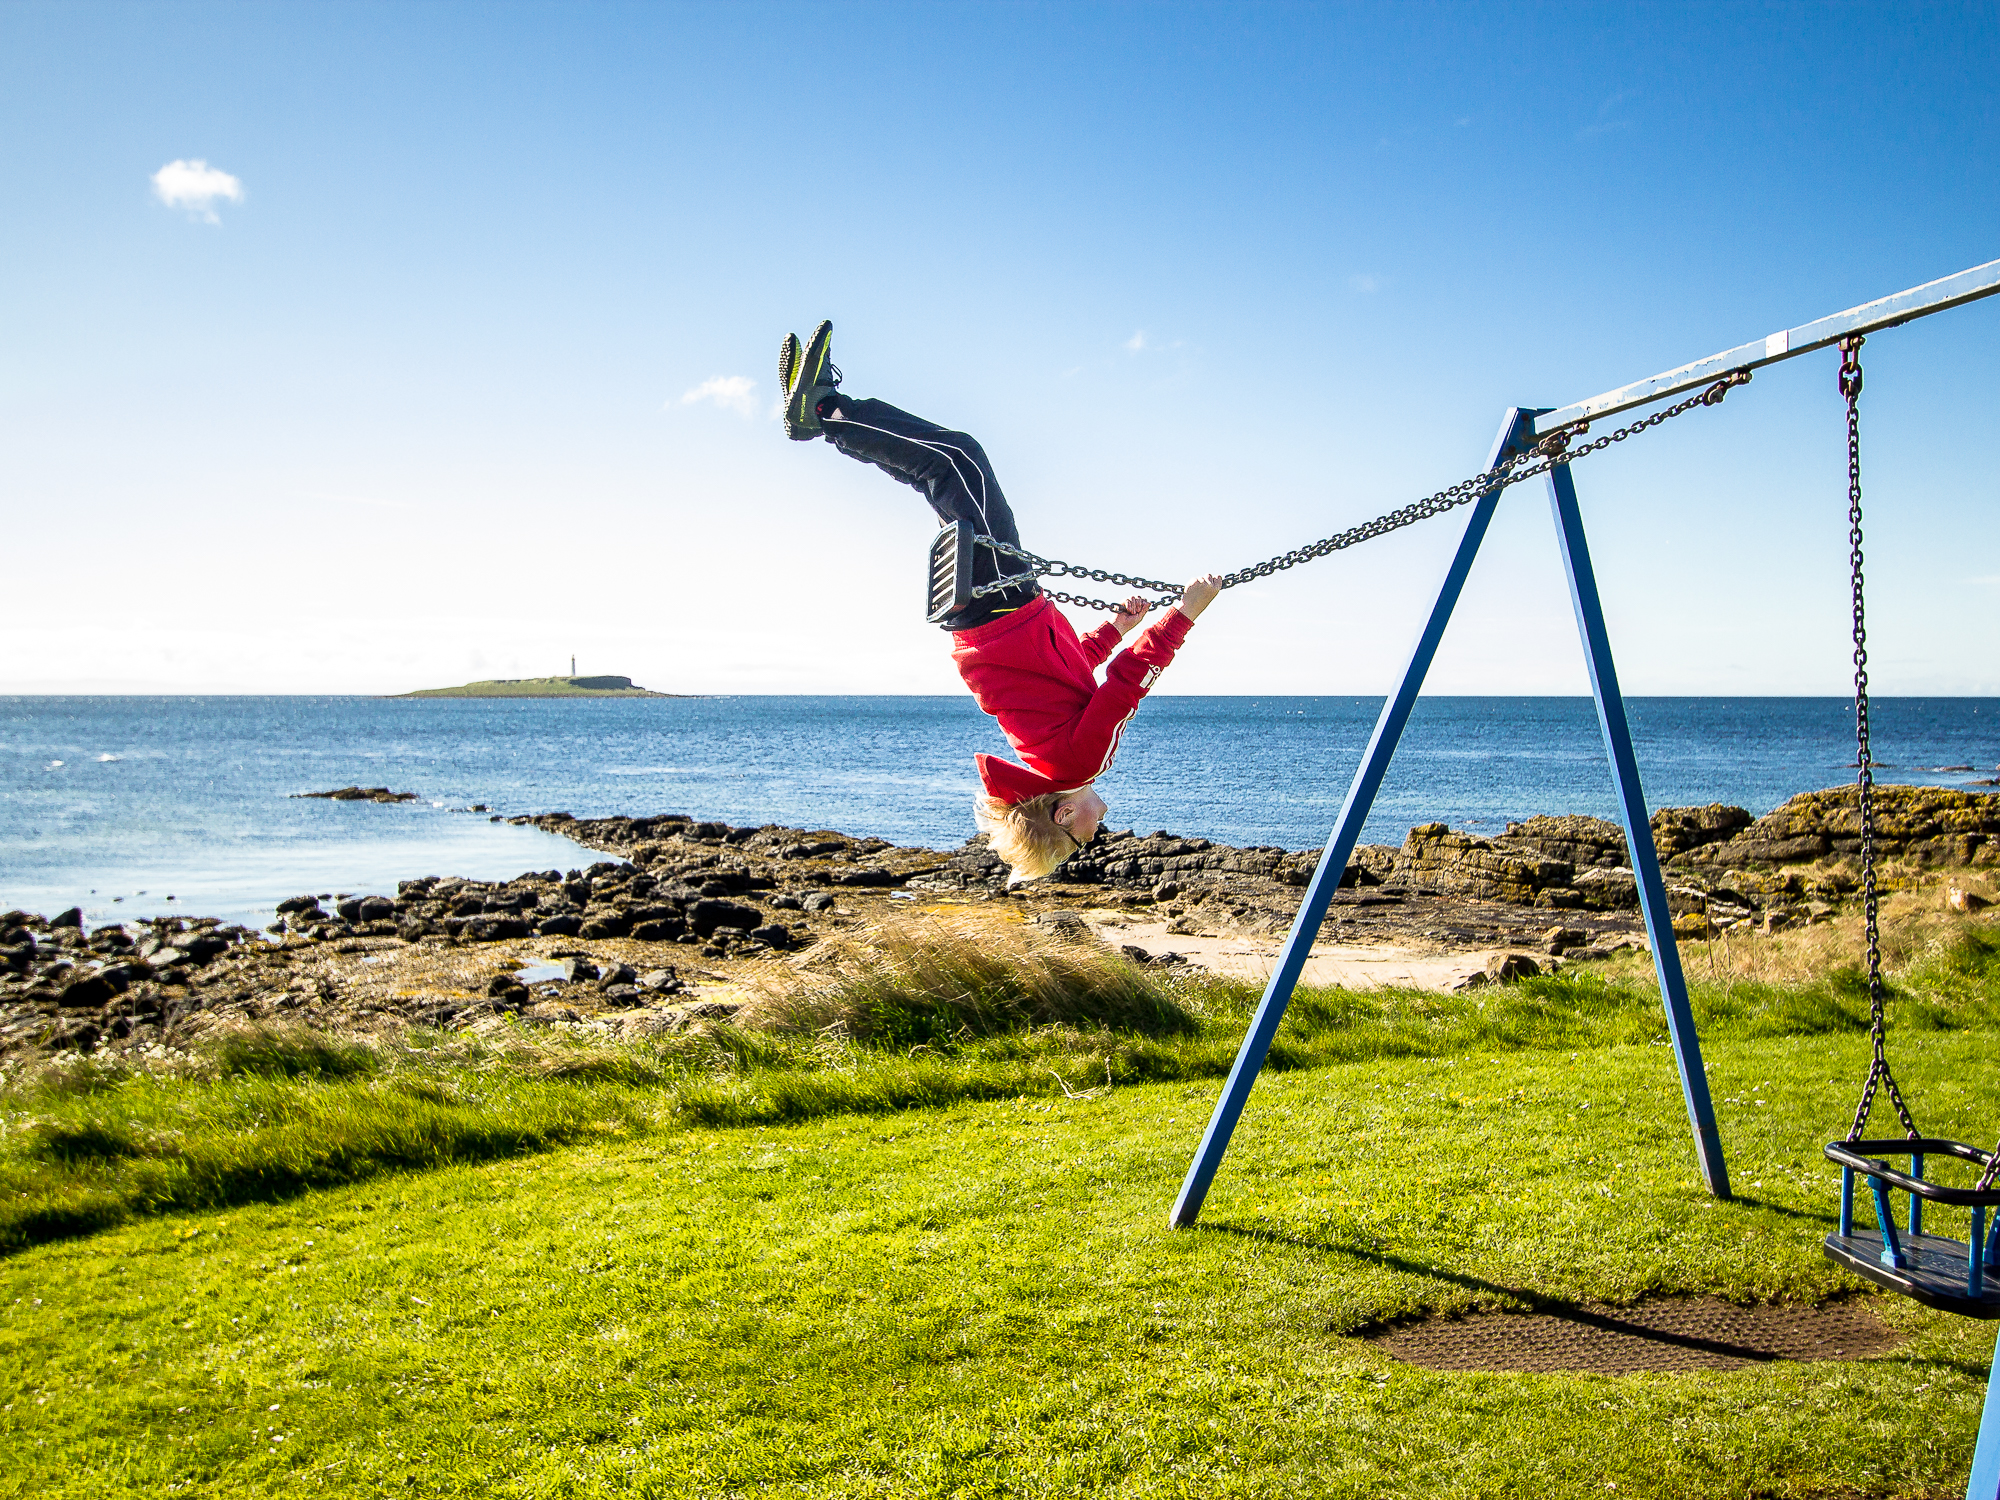 A young man flies high on a swing on the island of Arran